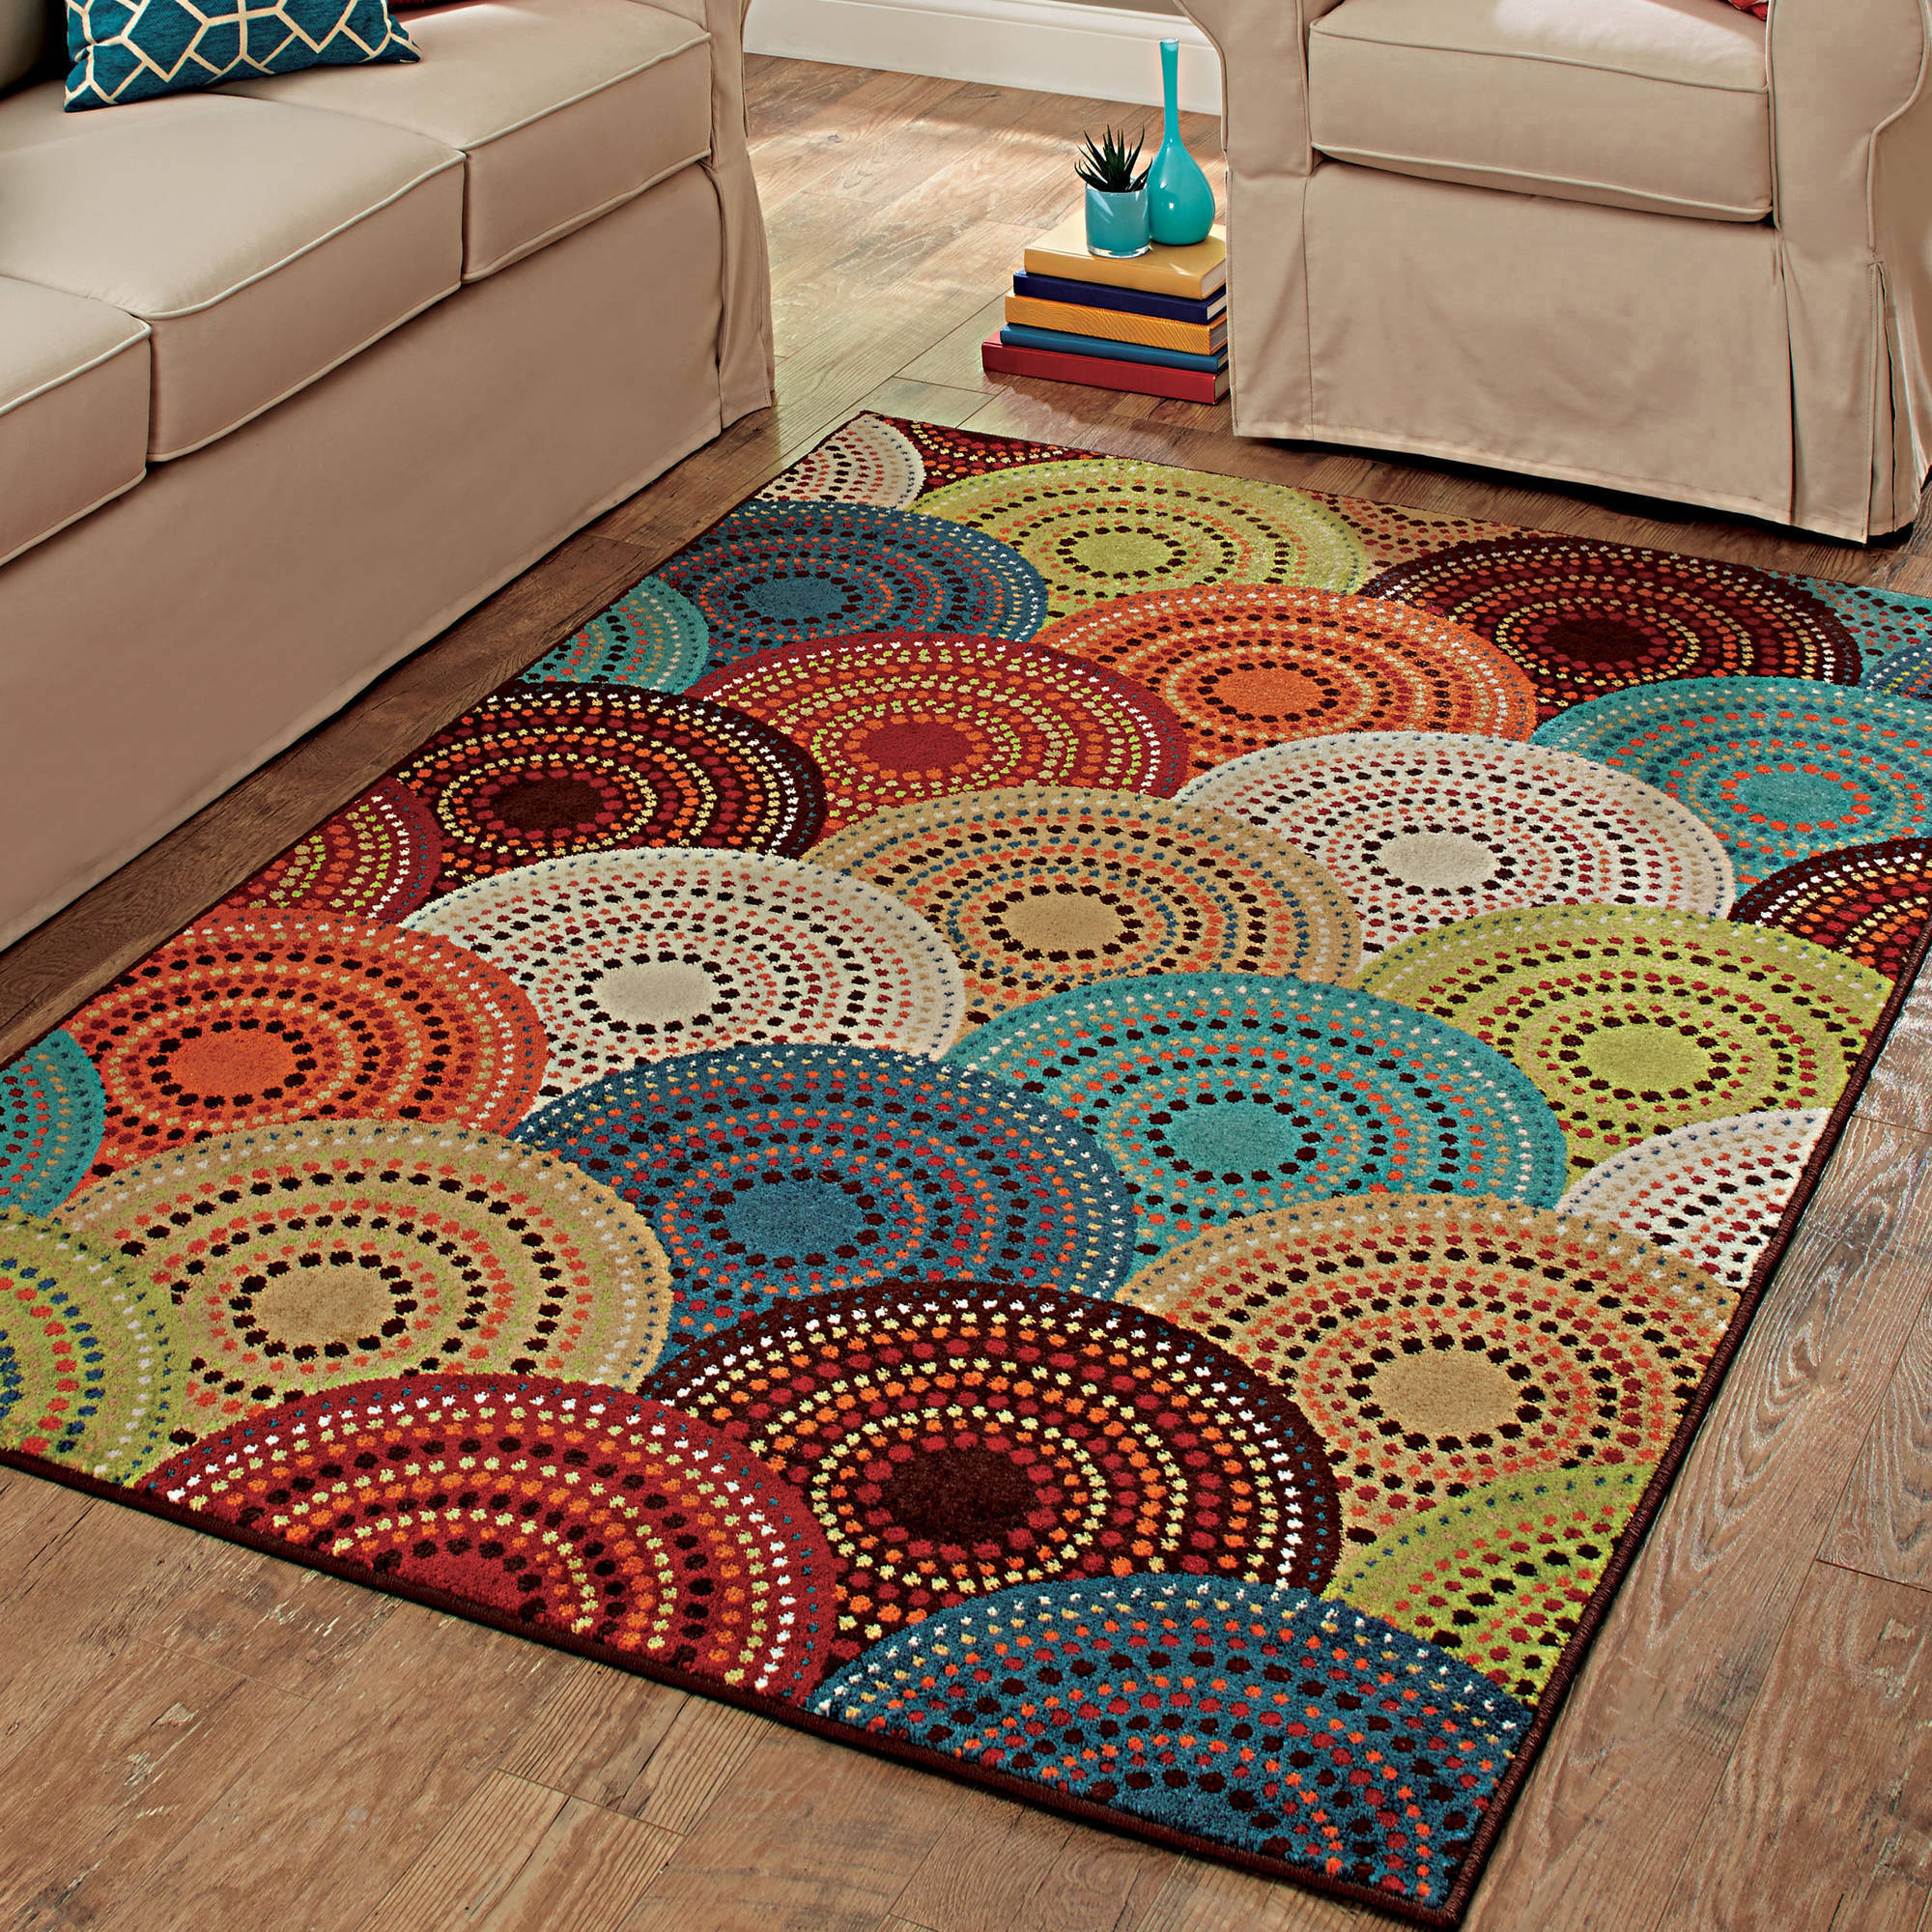 Olefin rugs vs wool rugs best rug 2018 for Accent rug vs area rug